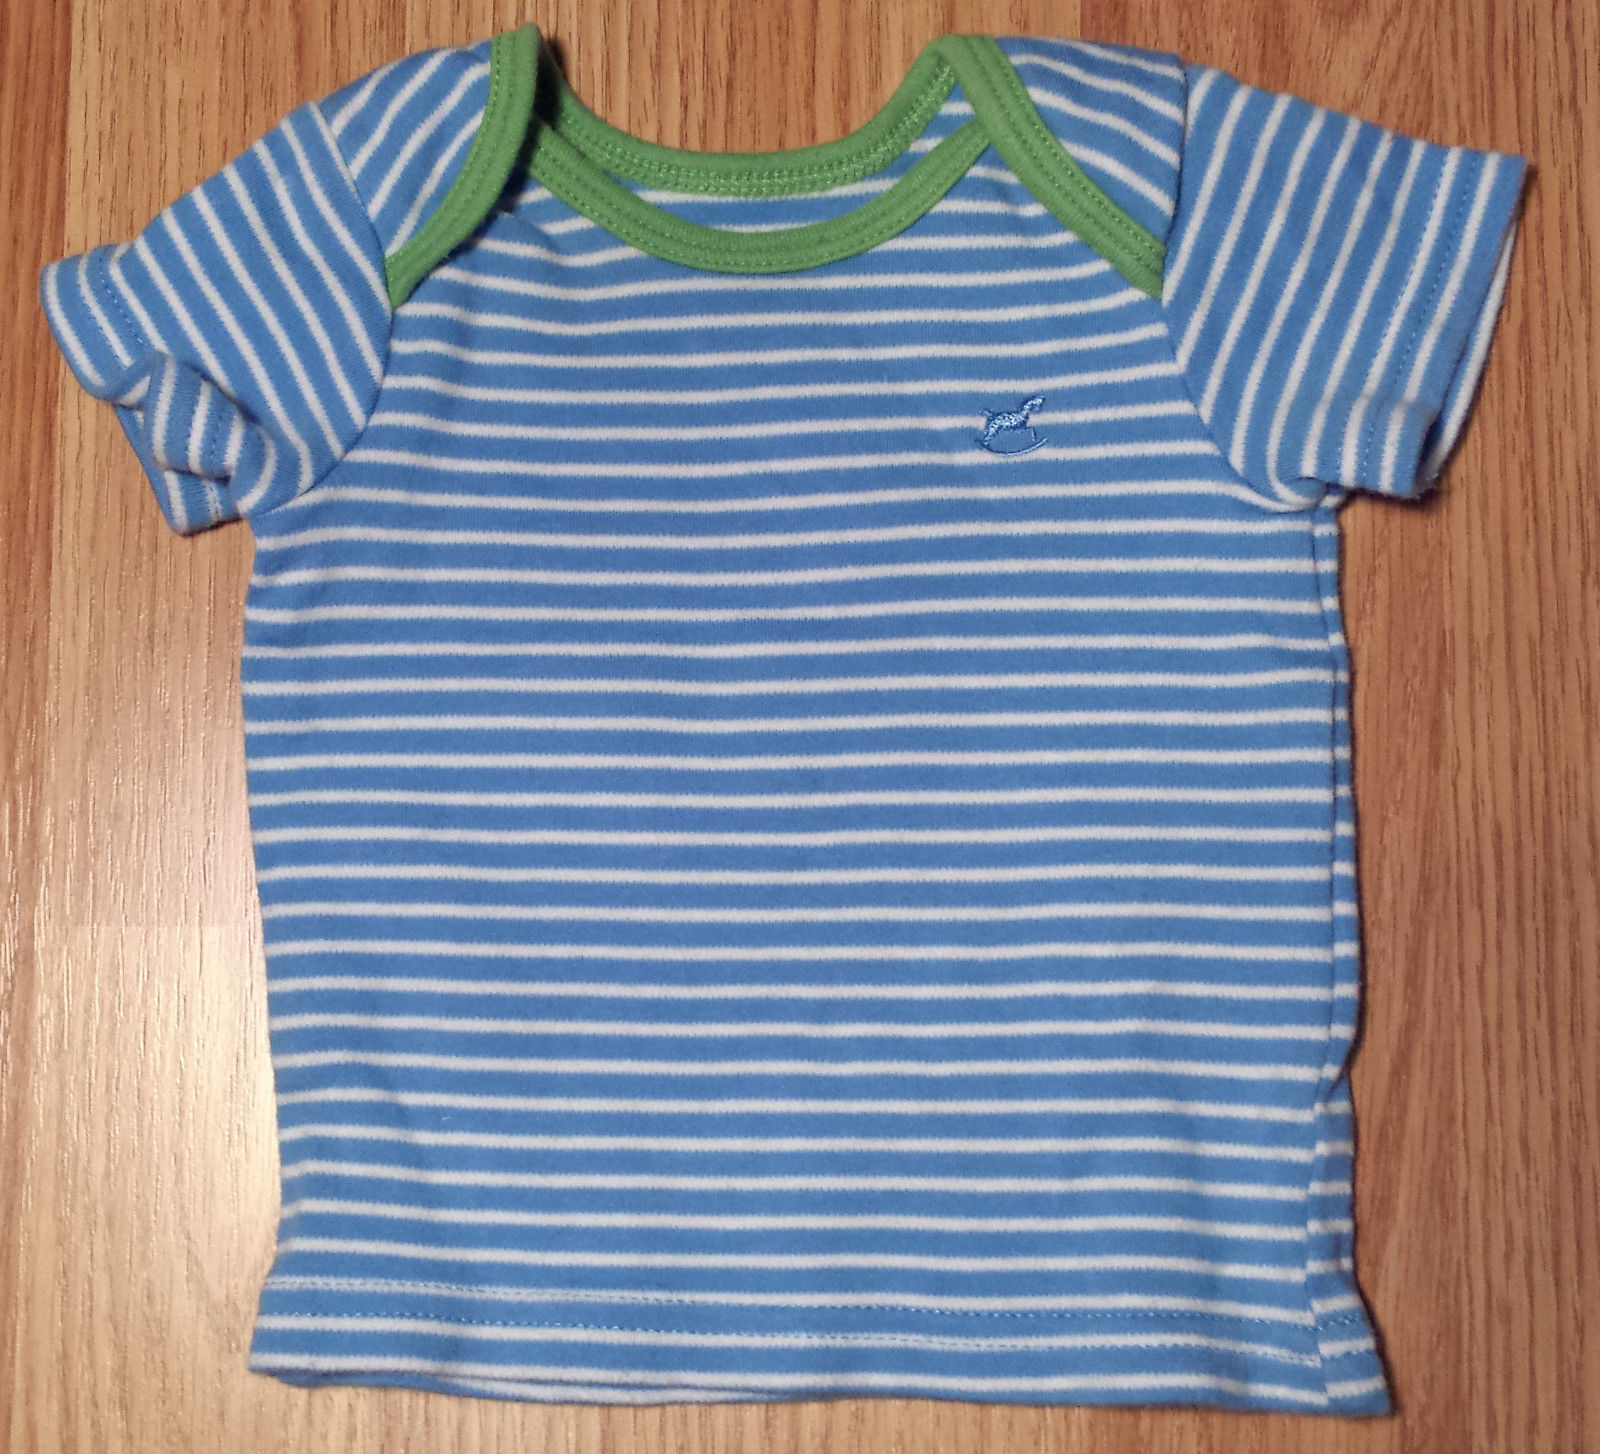 Boy's Size NB Newborn Two Piece Faded Glory Blue/ White Striped Top & Shorts